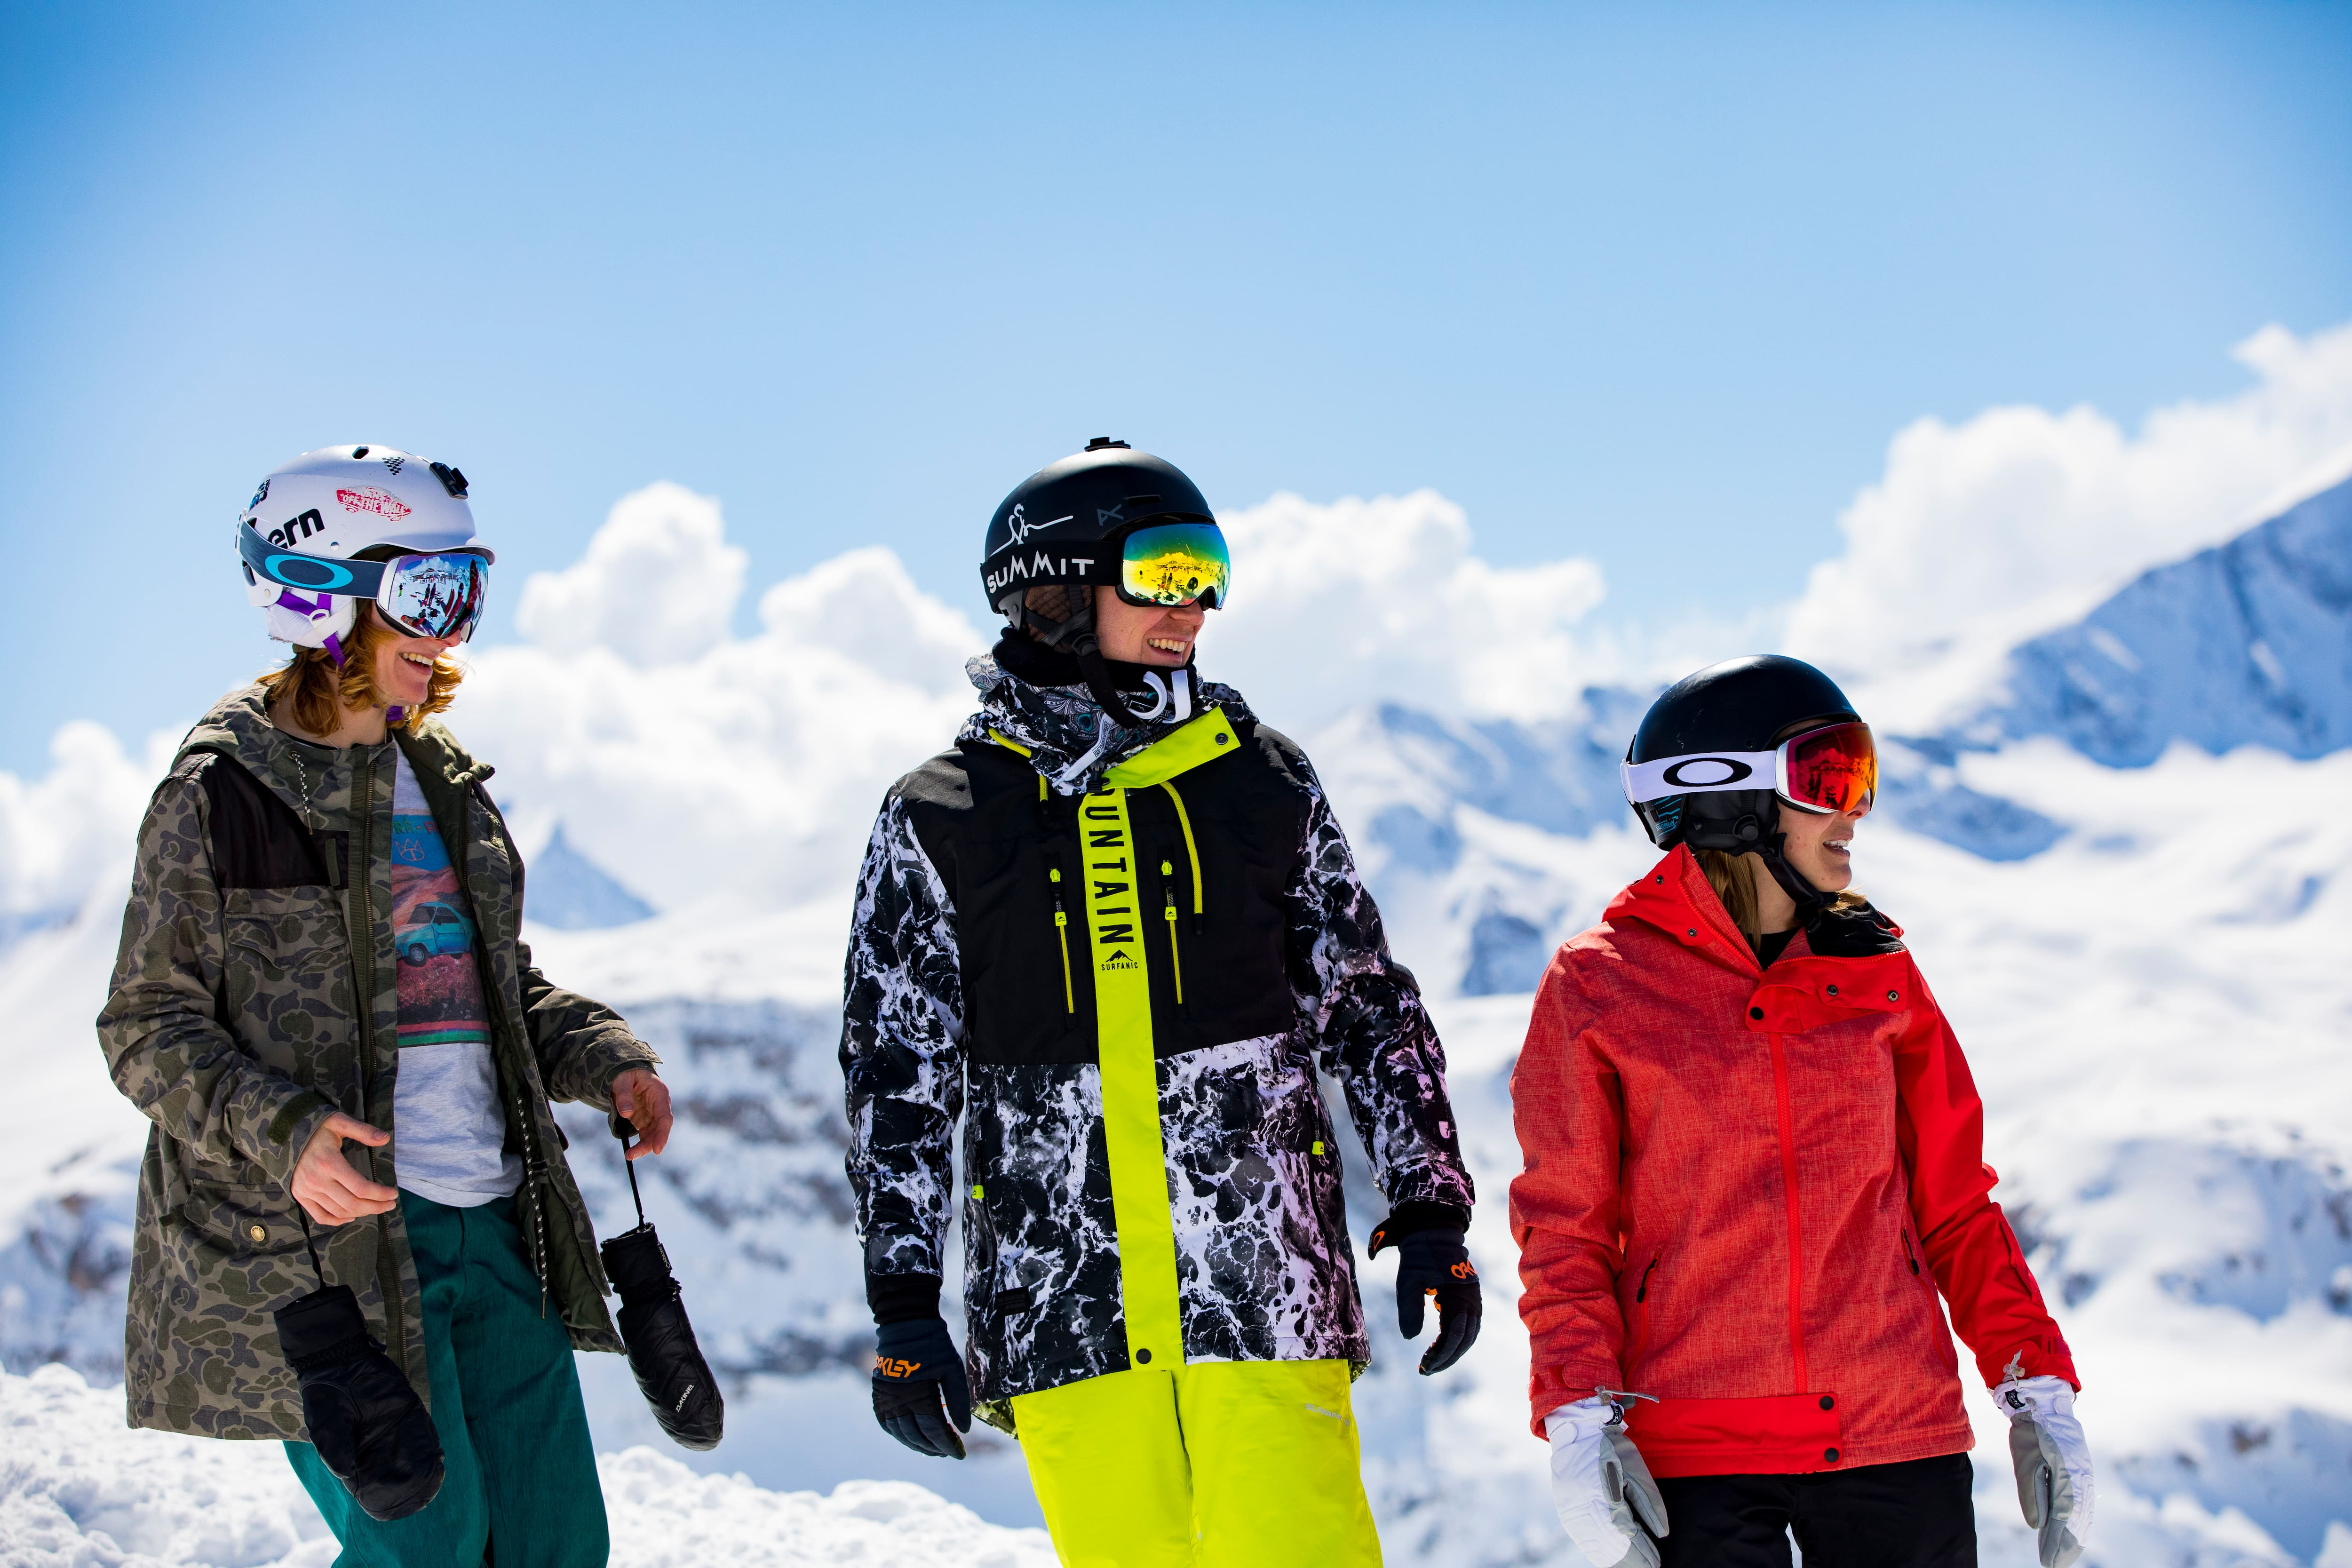 Skiers standing on the mountain